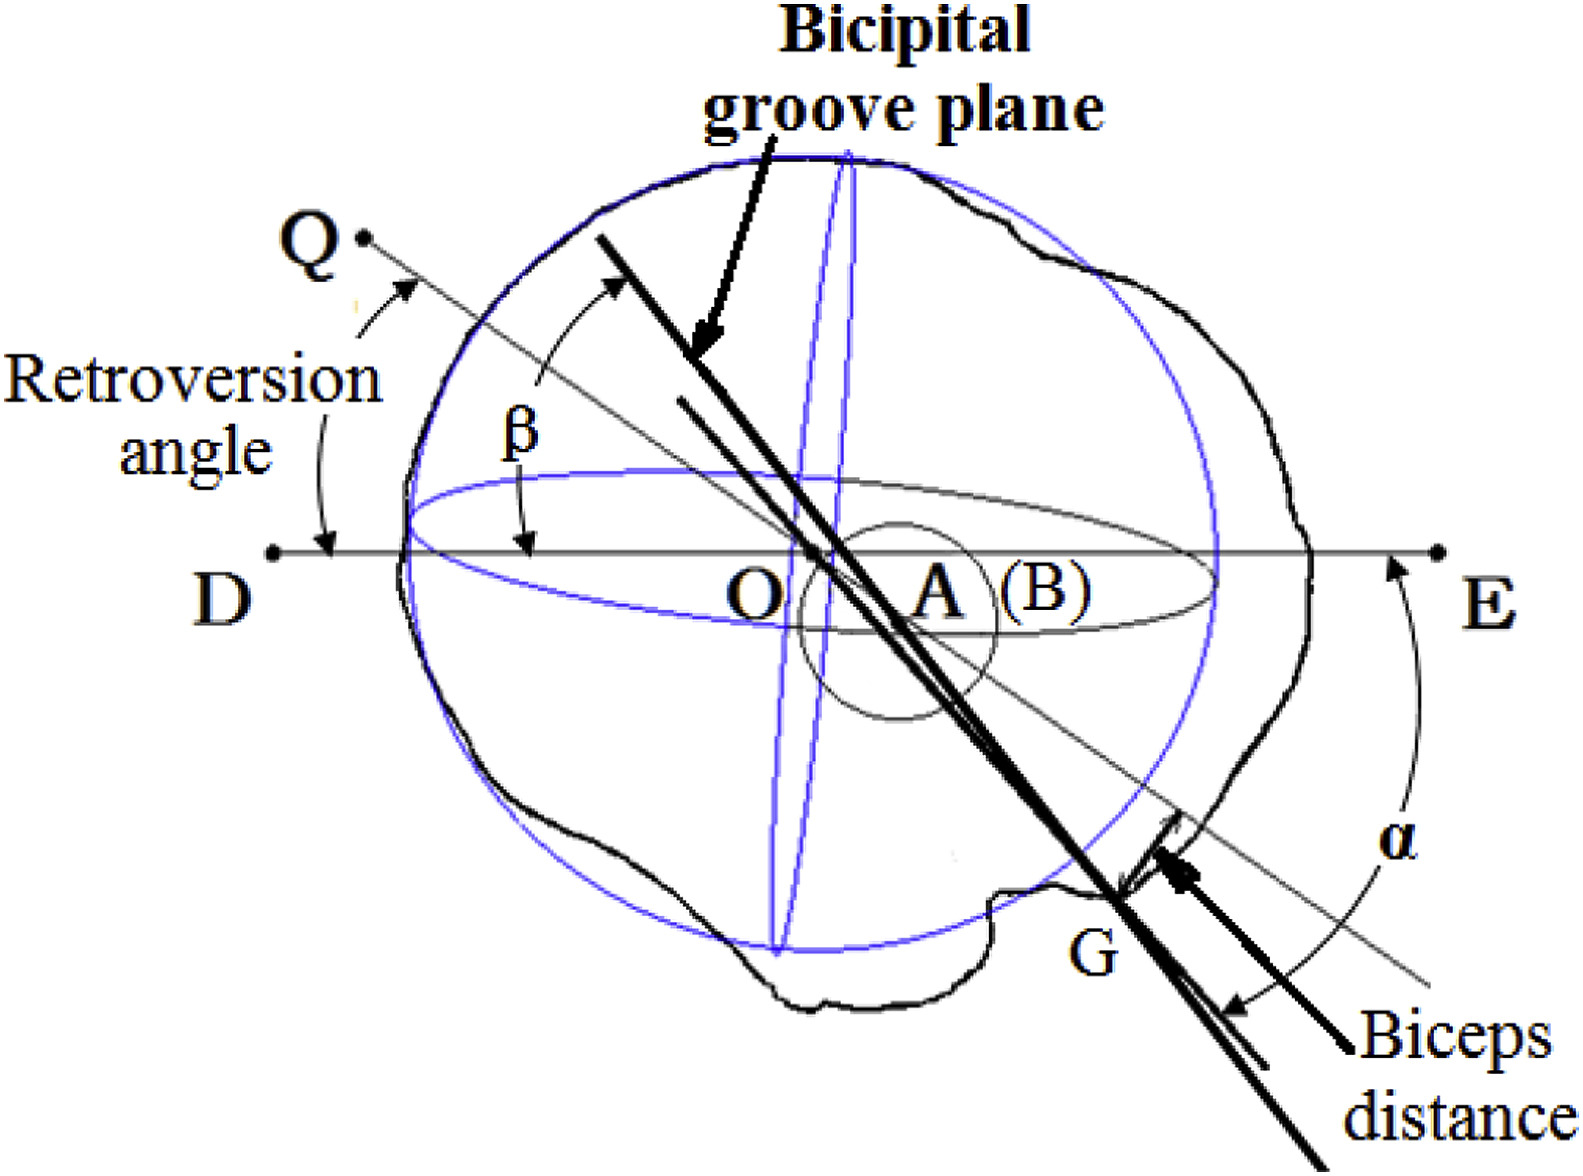 Analyzing on the location of the bicipital groove for ...